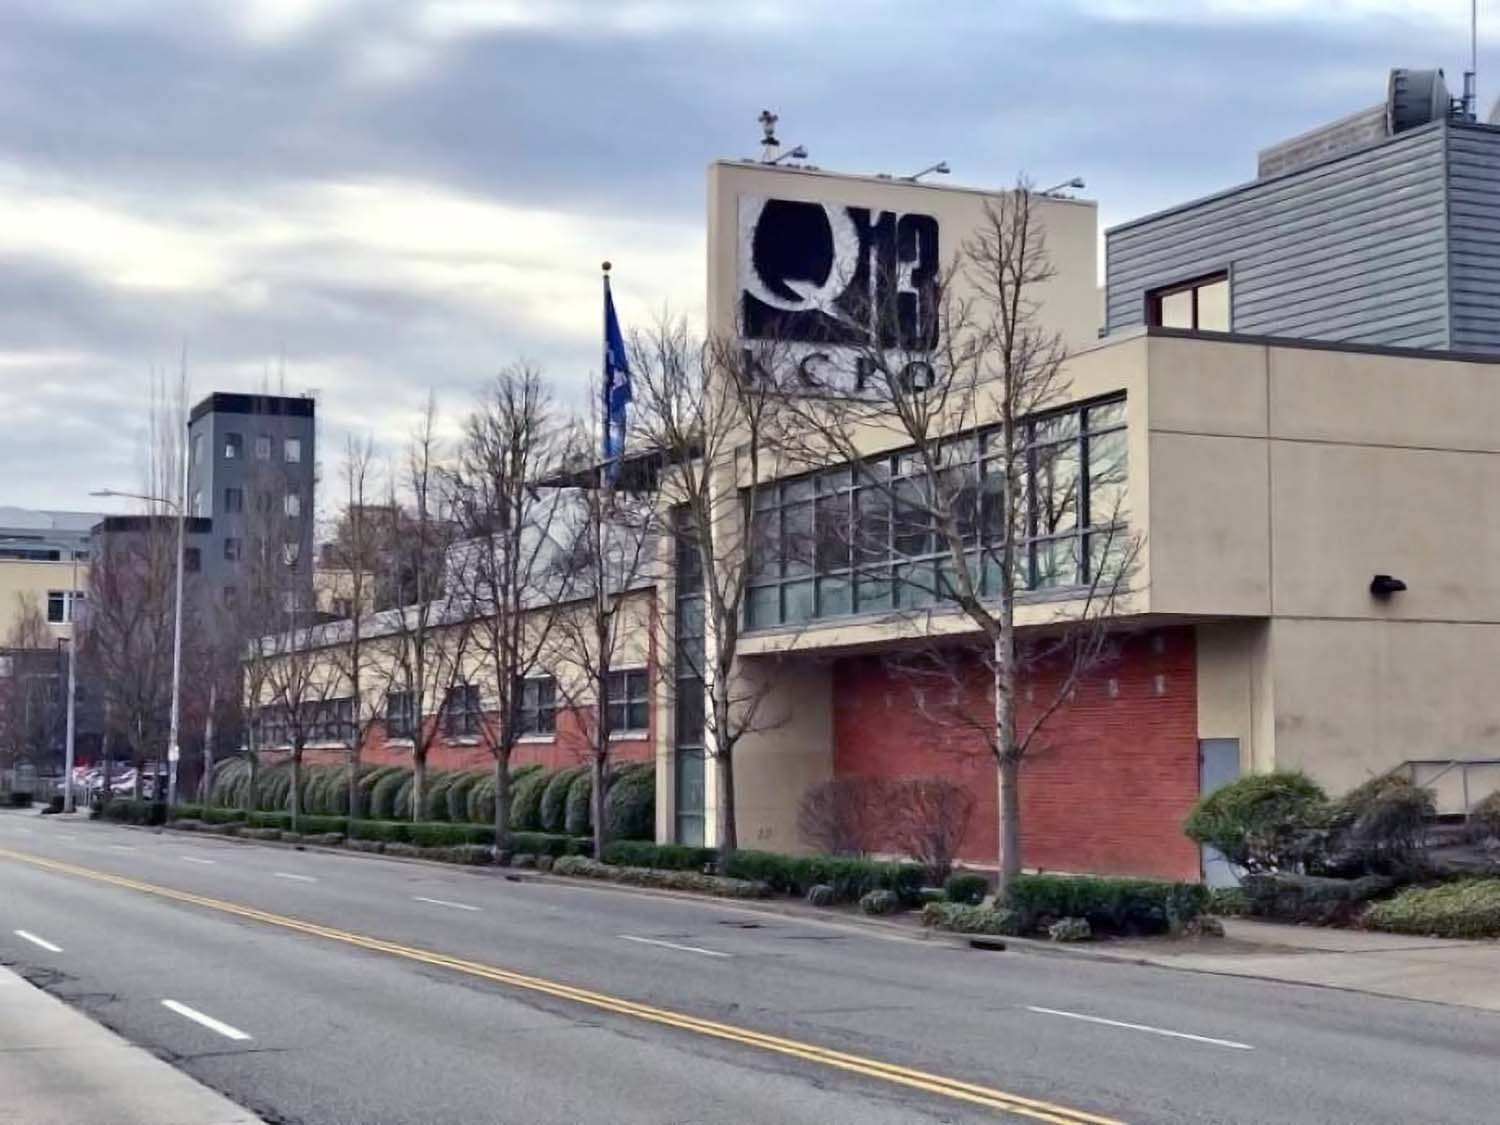 Q13 Fox News and JOEtv (KCPQ-TV & KZJO-TV) situated at 1813 Westlake Ave. N. Seattle